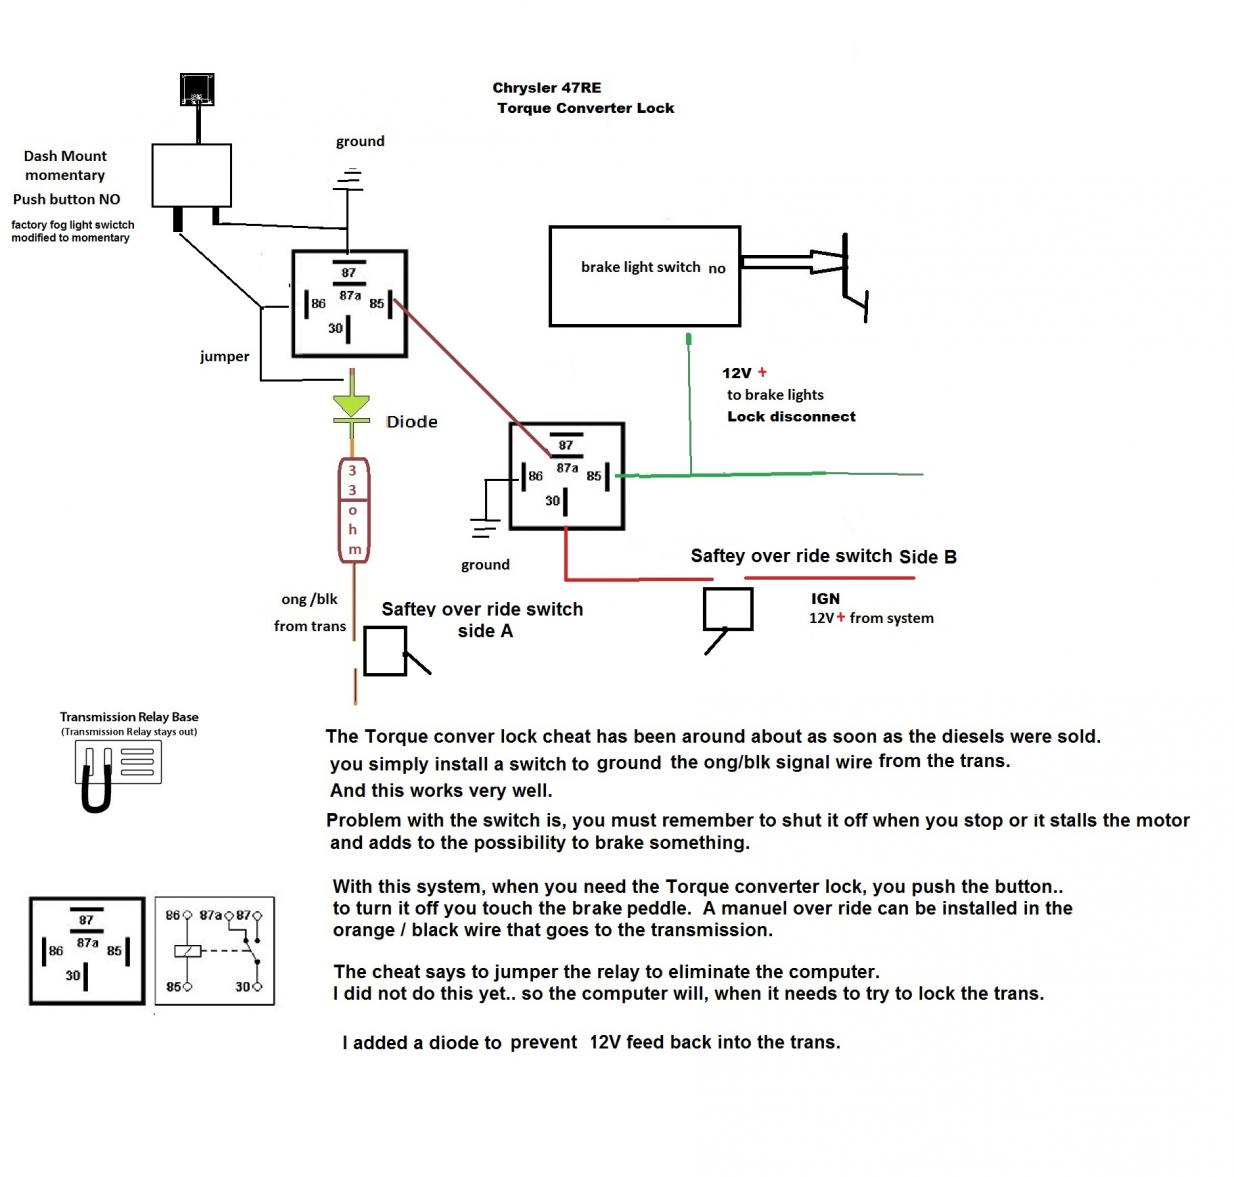 47rh lockup wiring diagram 2 awe capecoral bootsvermietung de \u202247rh lockup wiring diagram wiring diagram rh 16 geschiedenisanders nl 47re wiring diagram dodge 47rh transmission diagram